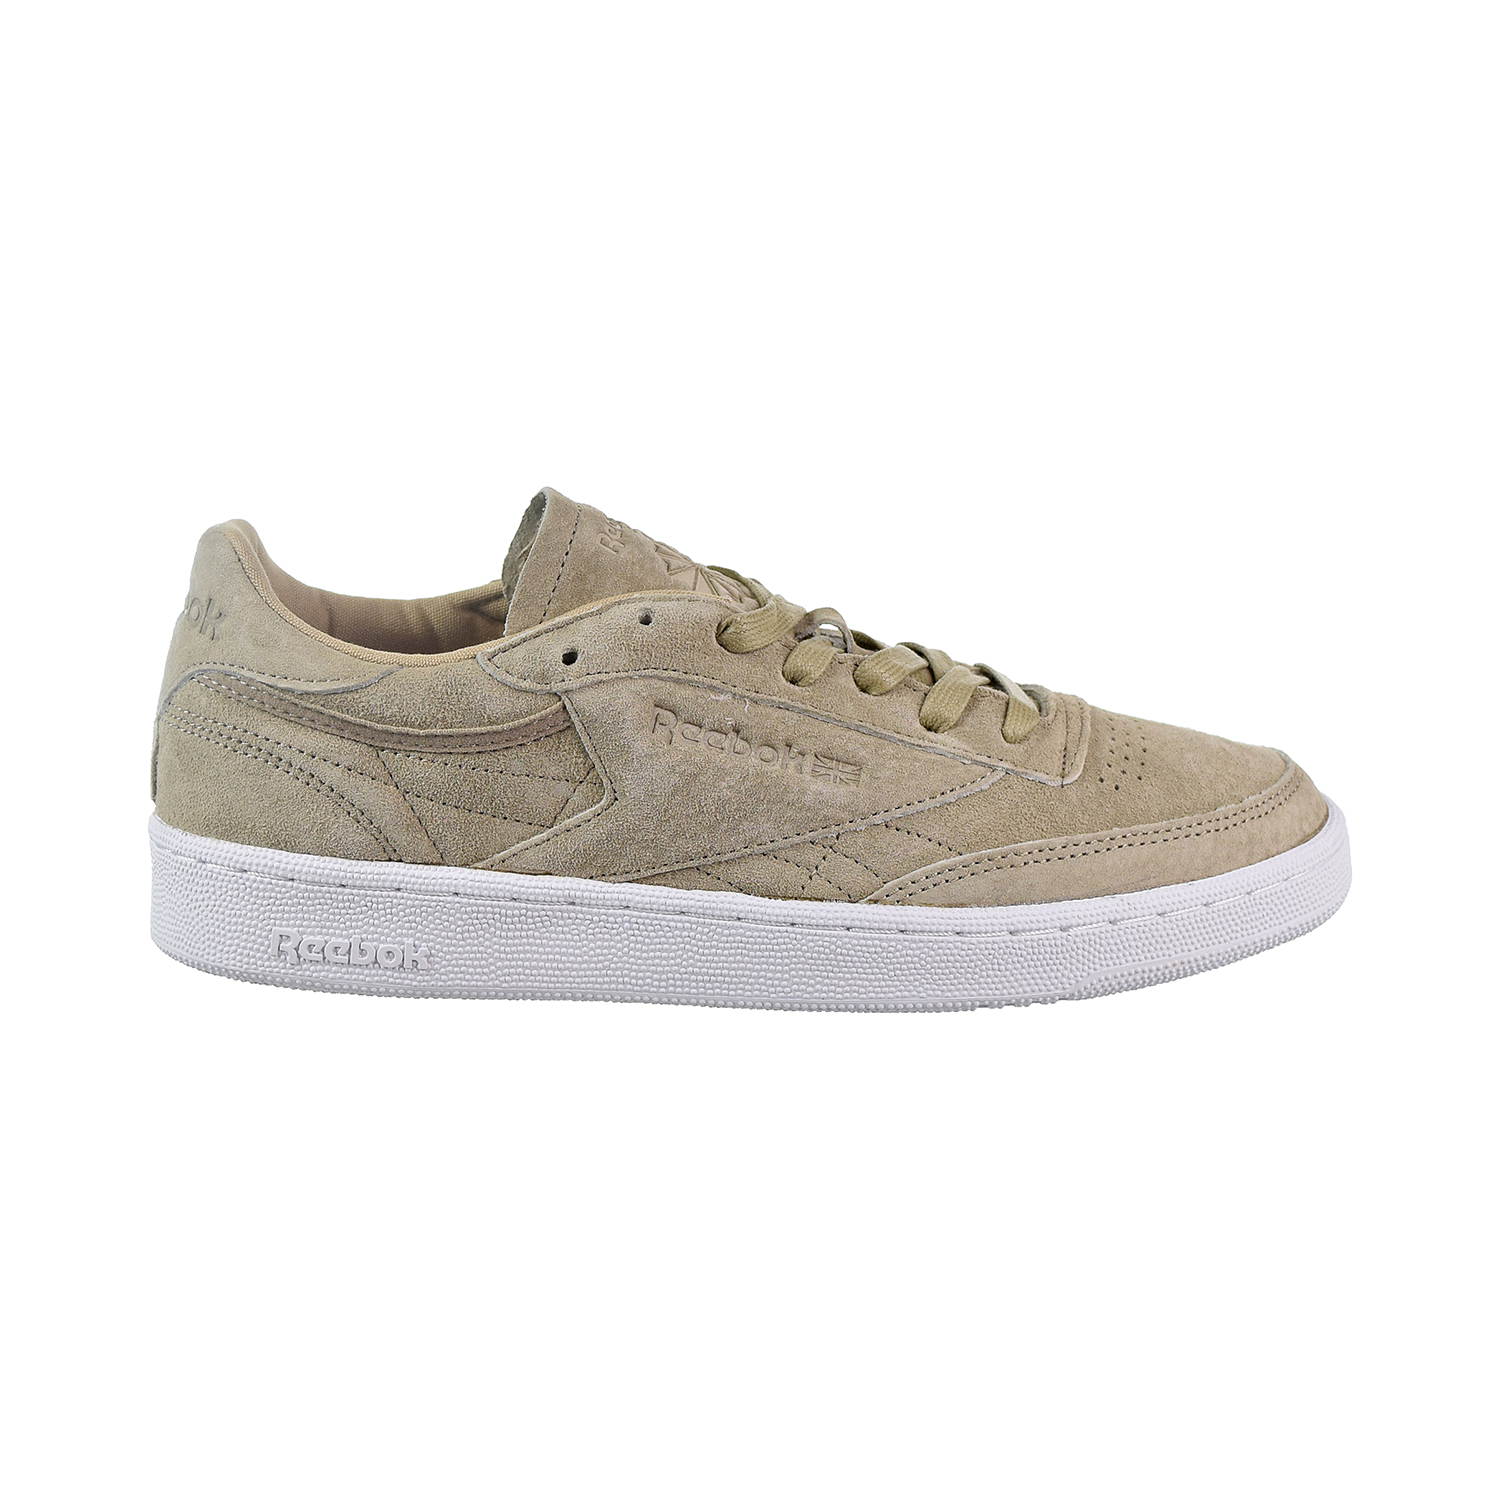 a407881028f Details about Reebok Club C 85 LST Men s Shoes Oatmeal Driftwood  White  BD1897